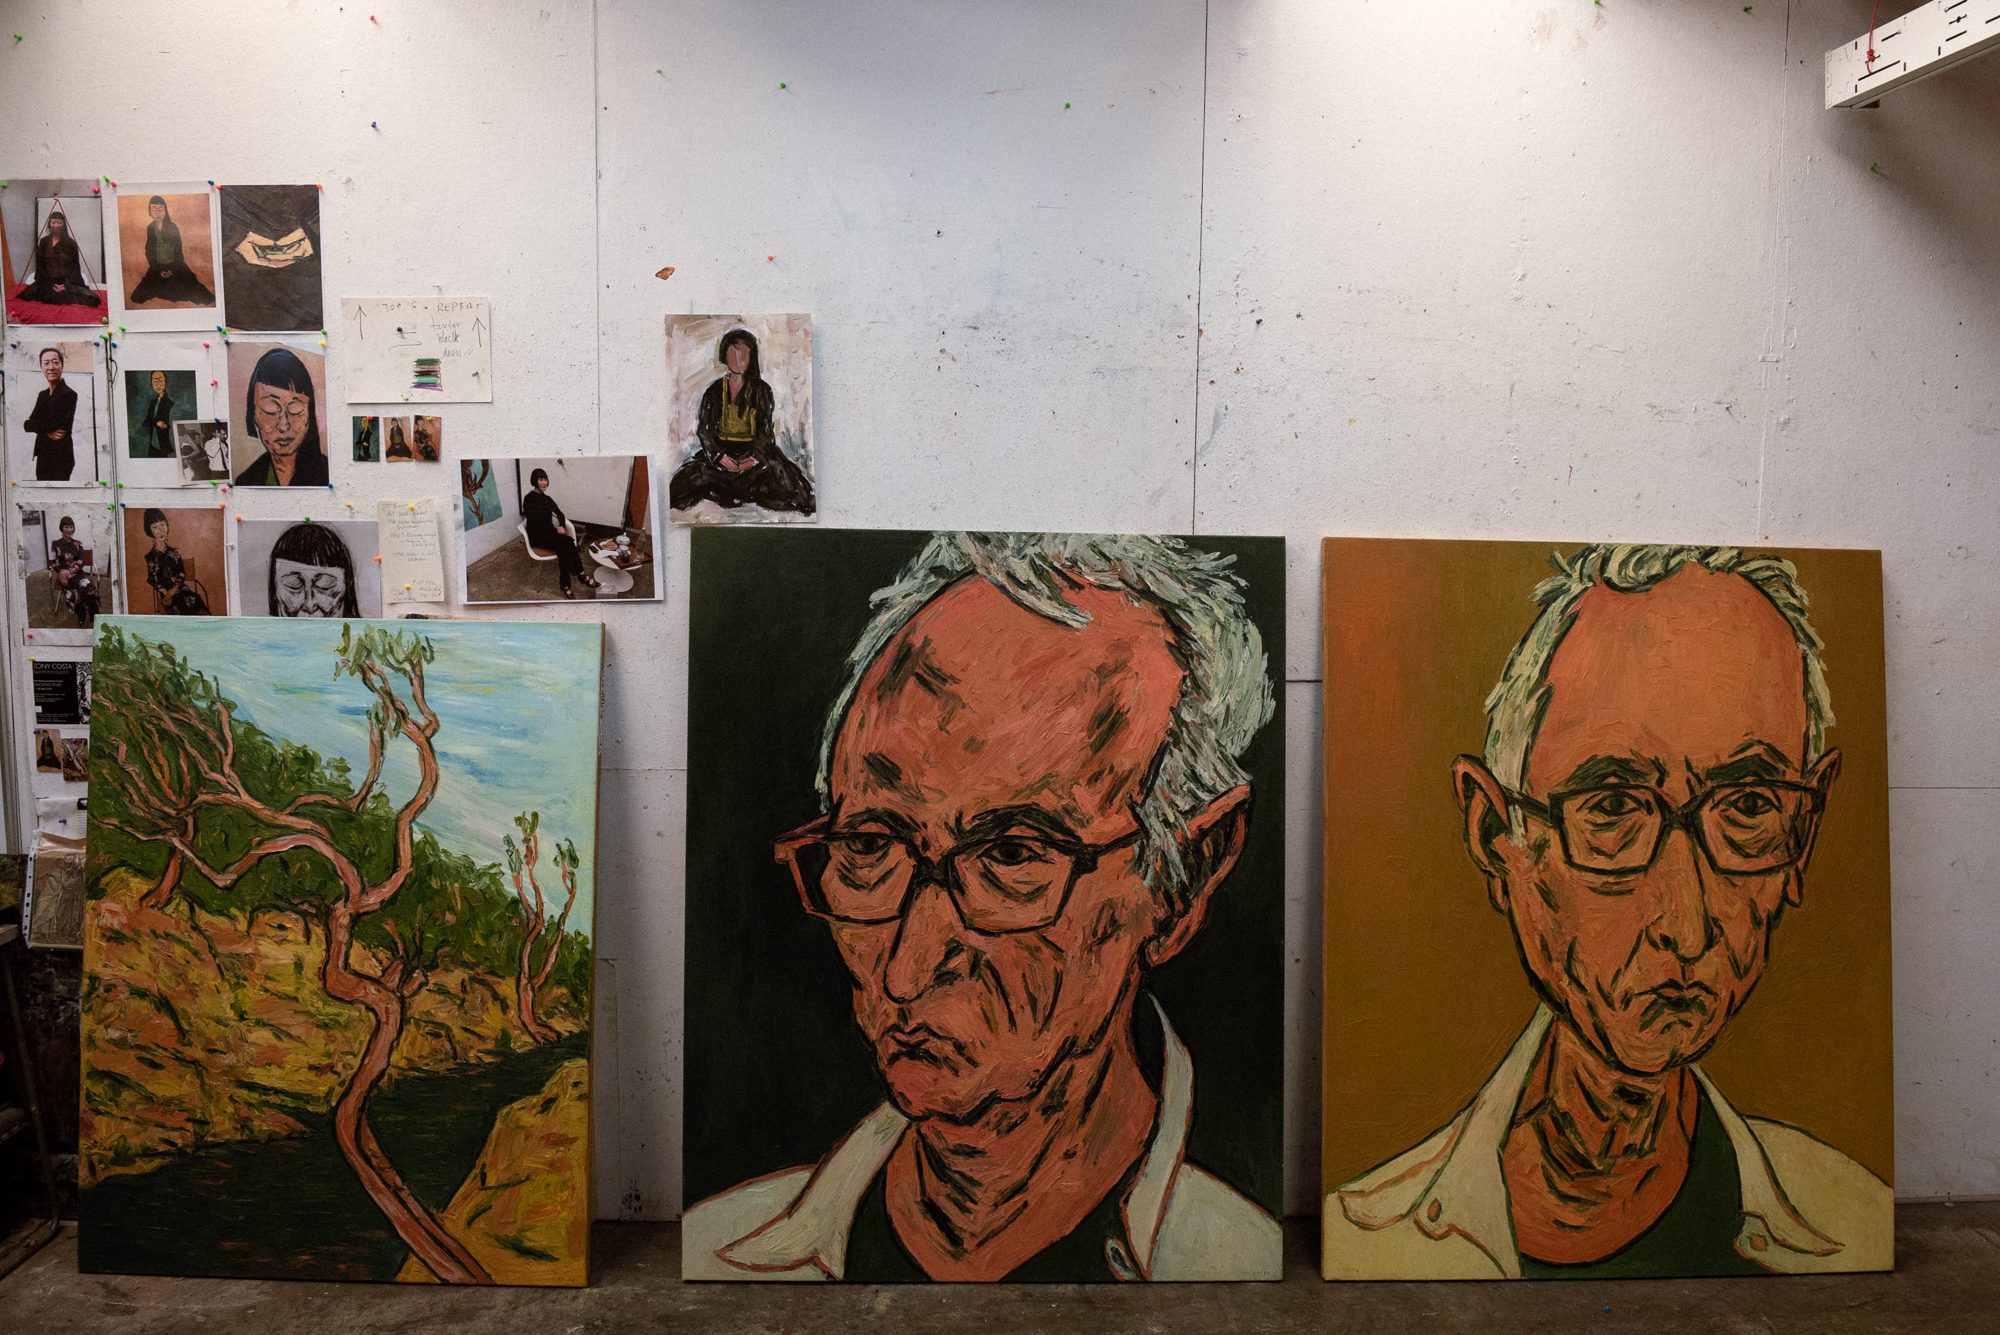 2019 Archibald Prize Winner Tony Costa on his portrait of Lindy Lee